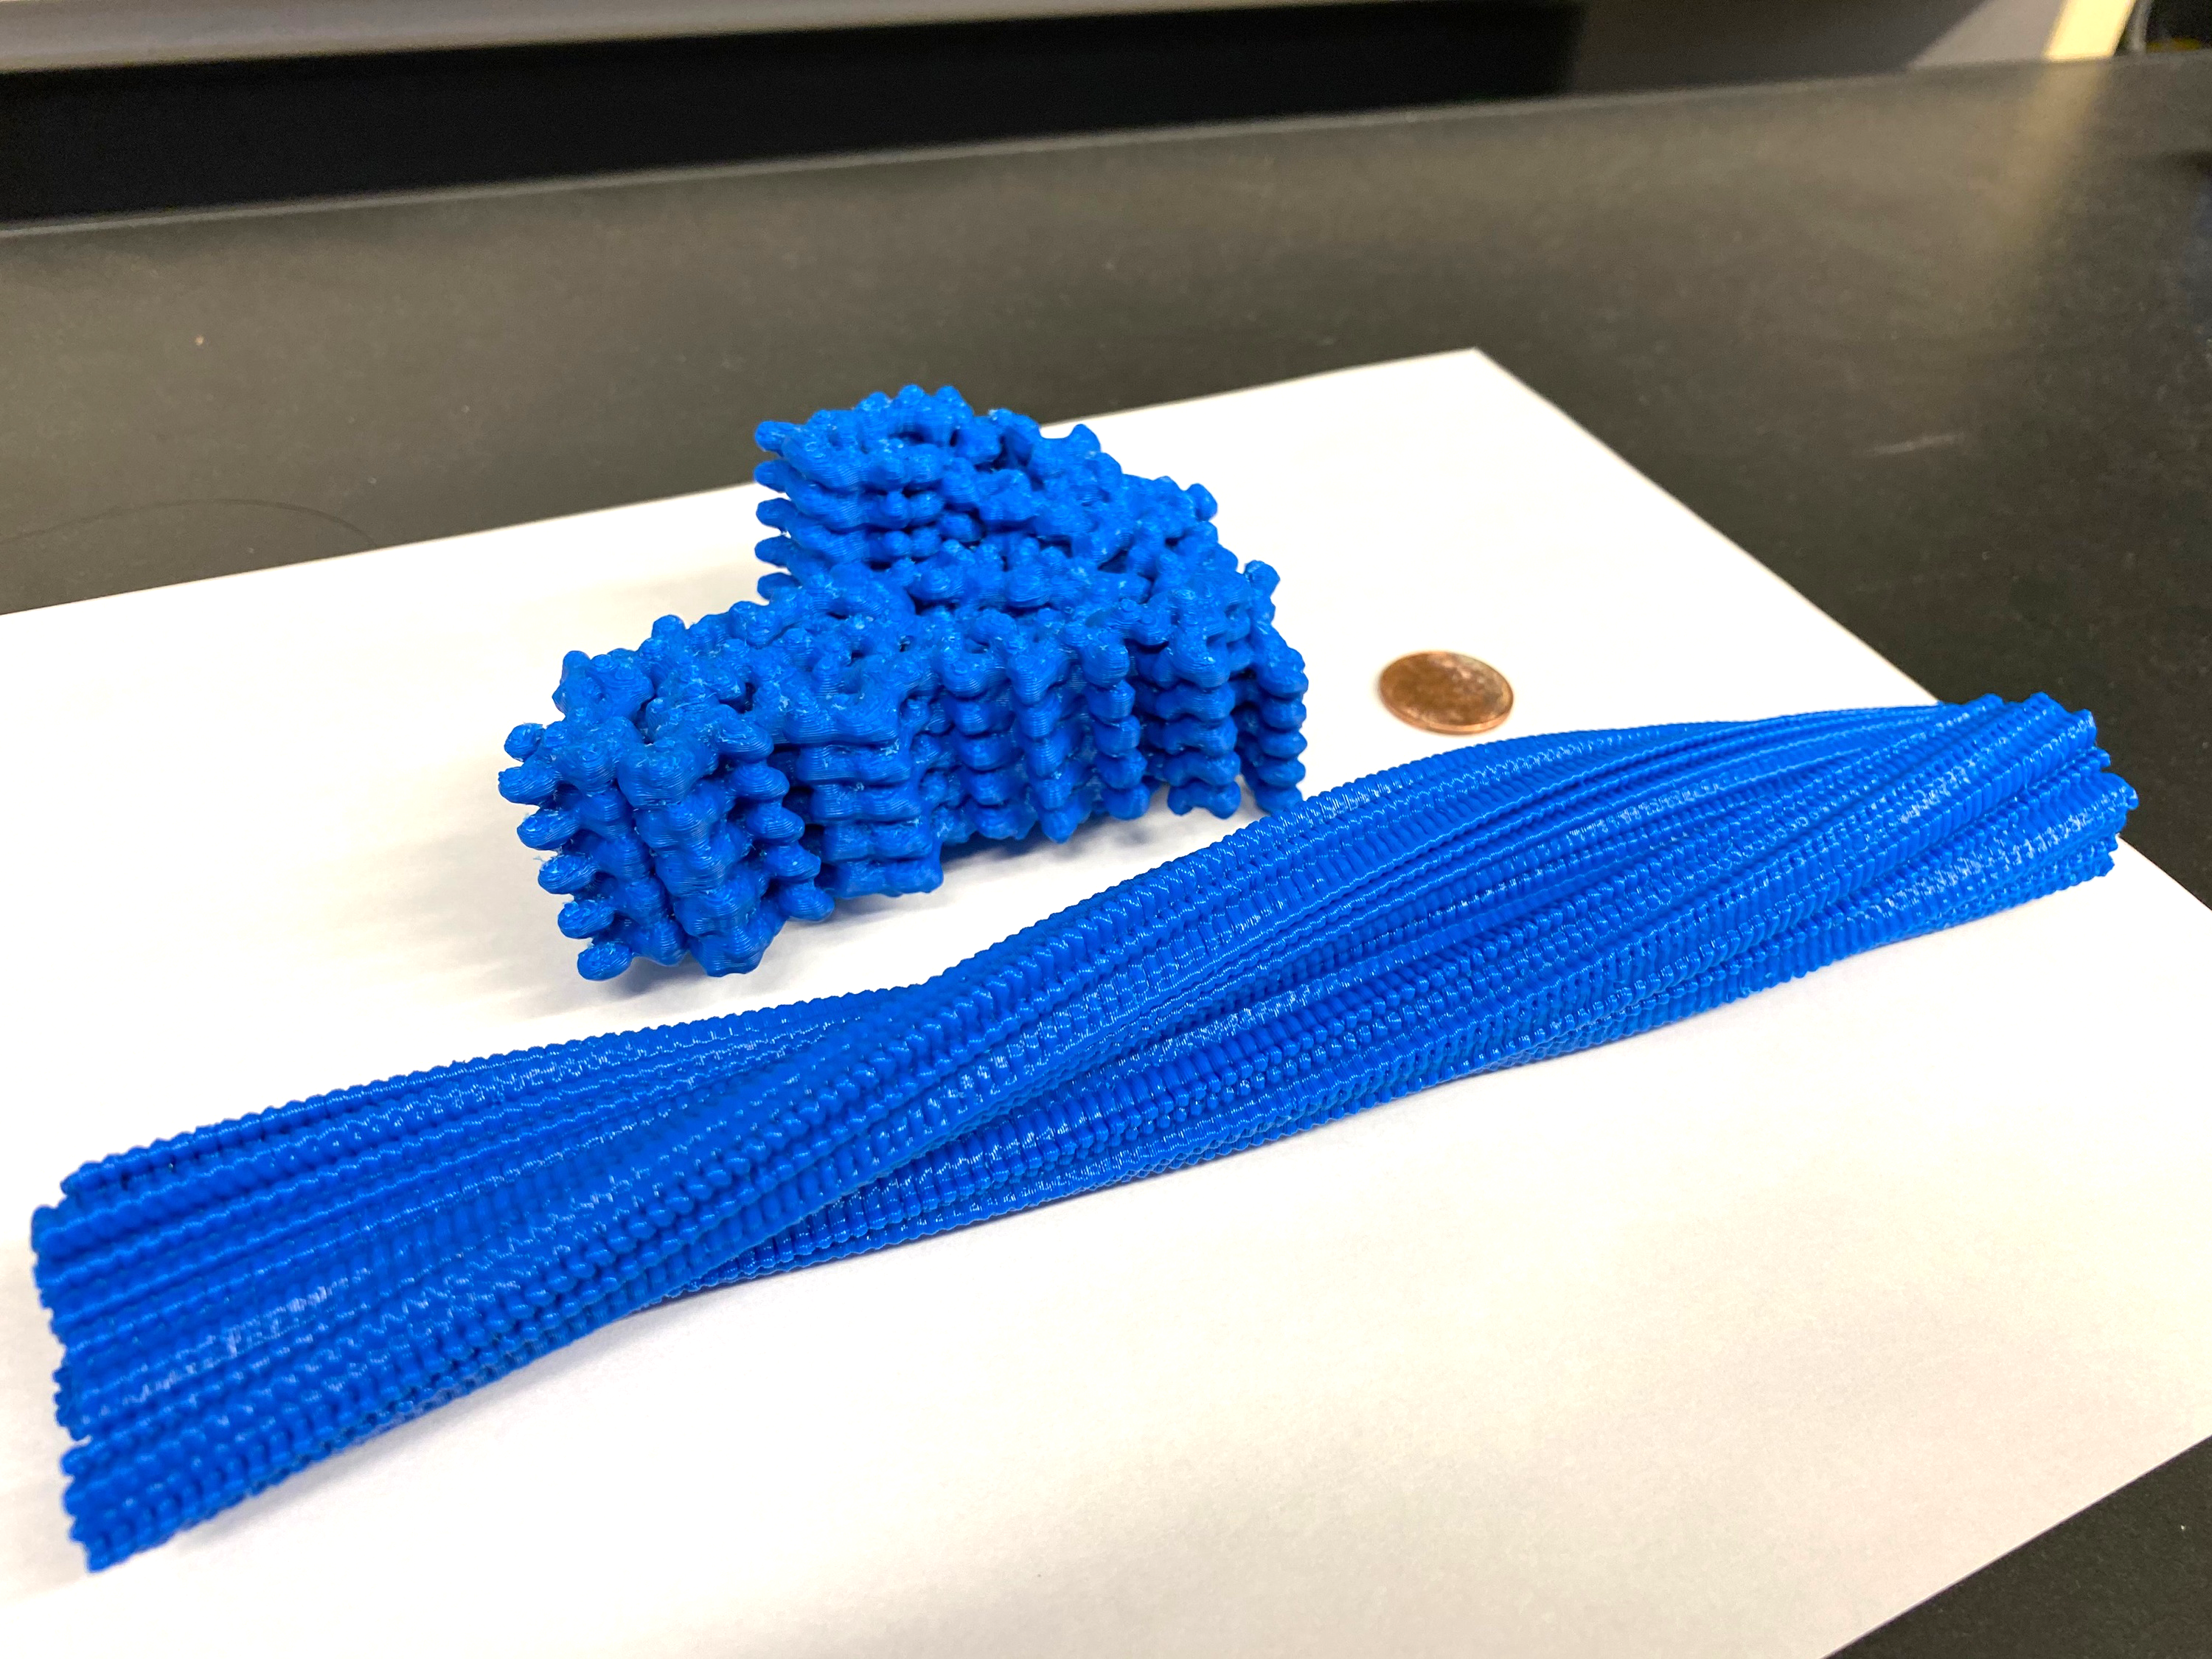 Two models of a protein printed in blue plastic. One is curled up and knotted. The other is long and straight.